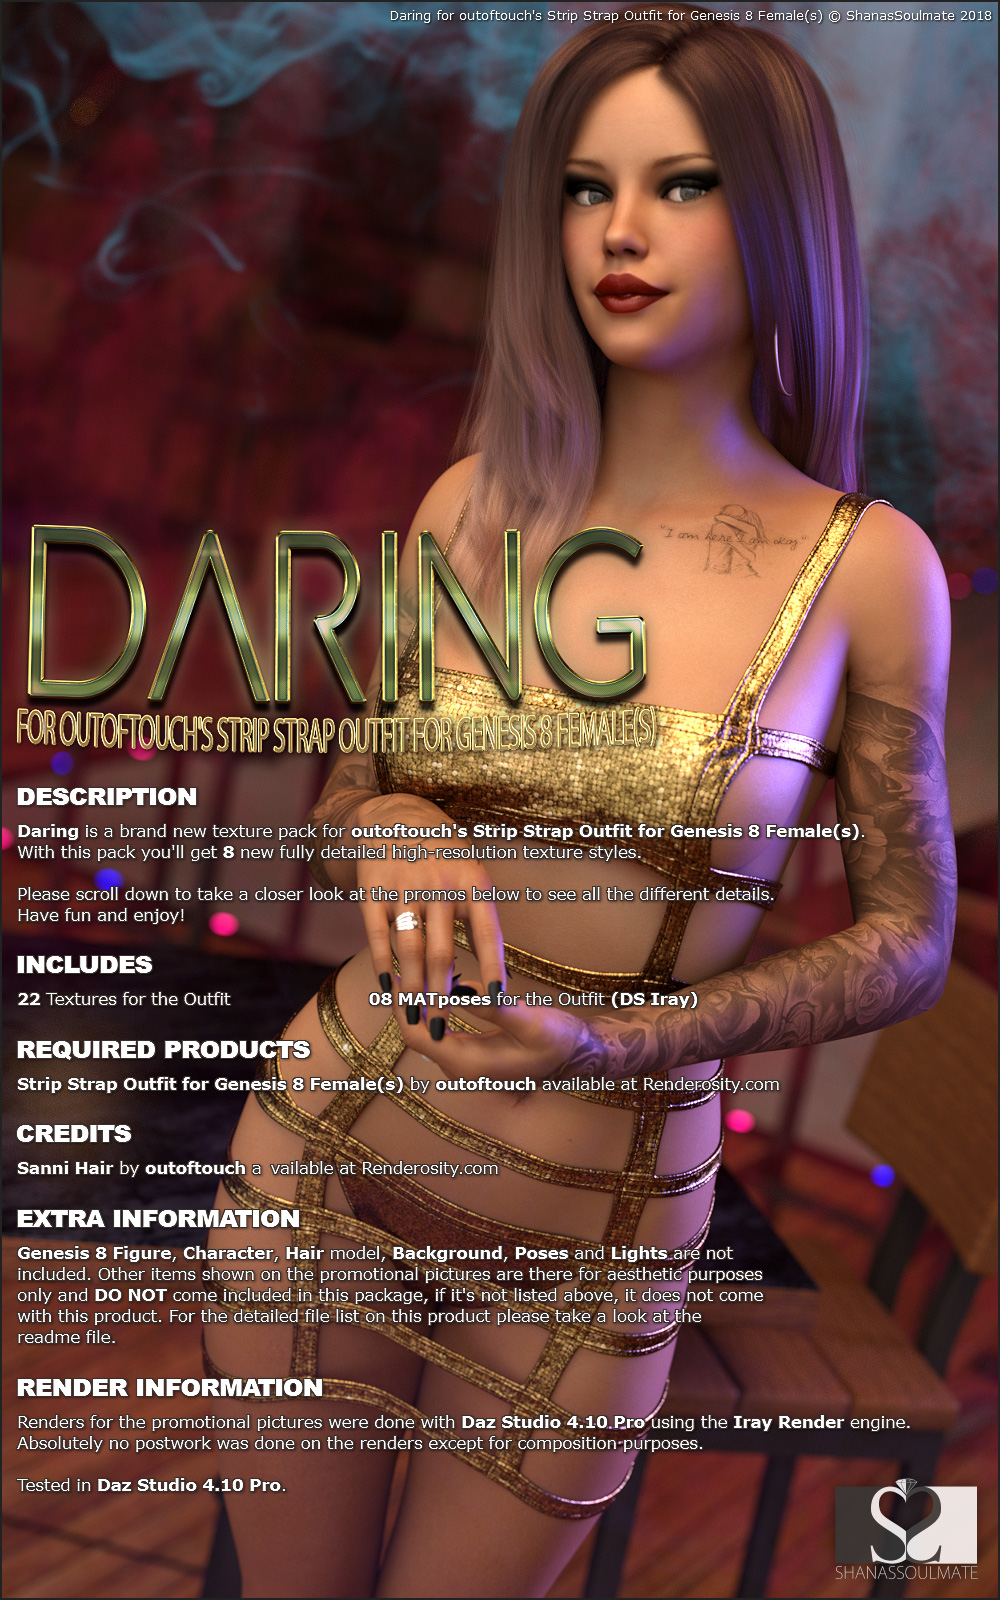 Daring for Strip Strap Outfit for Genesis 8 Females